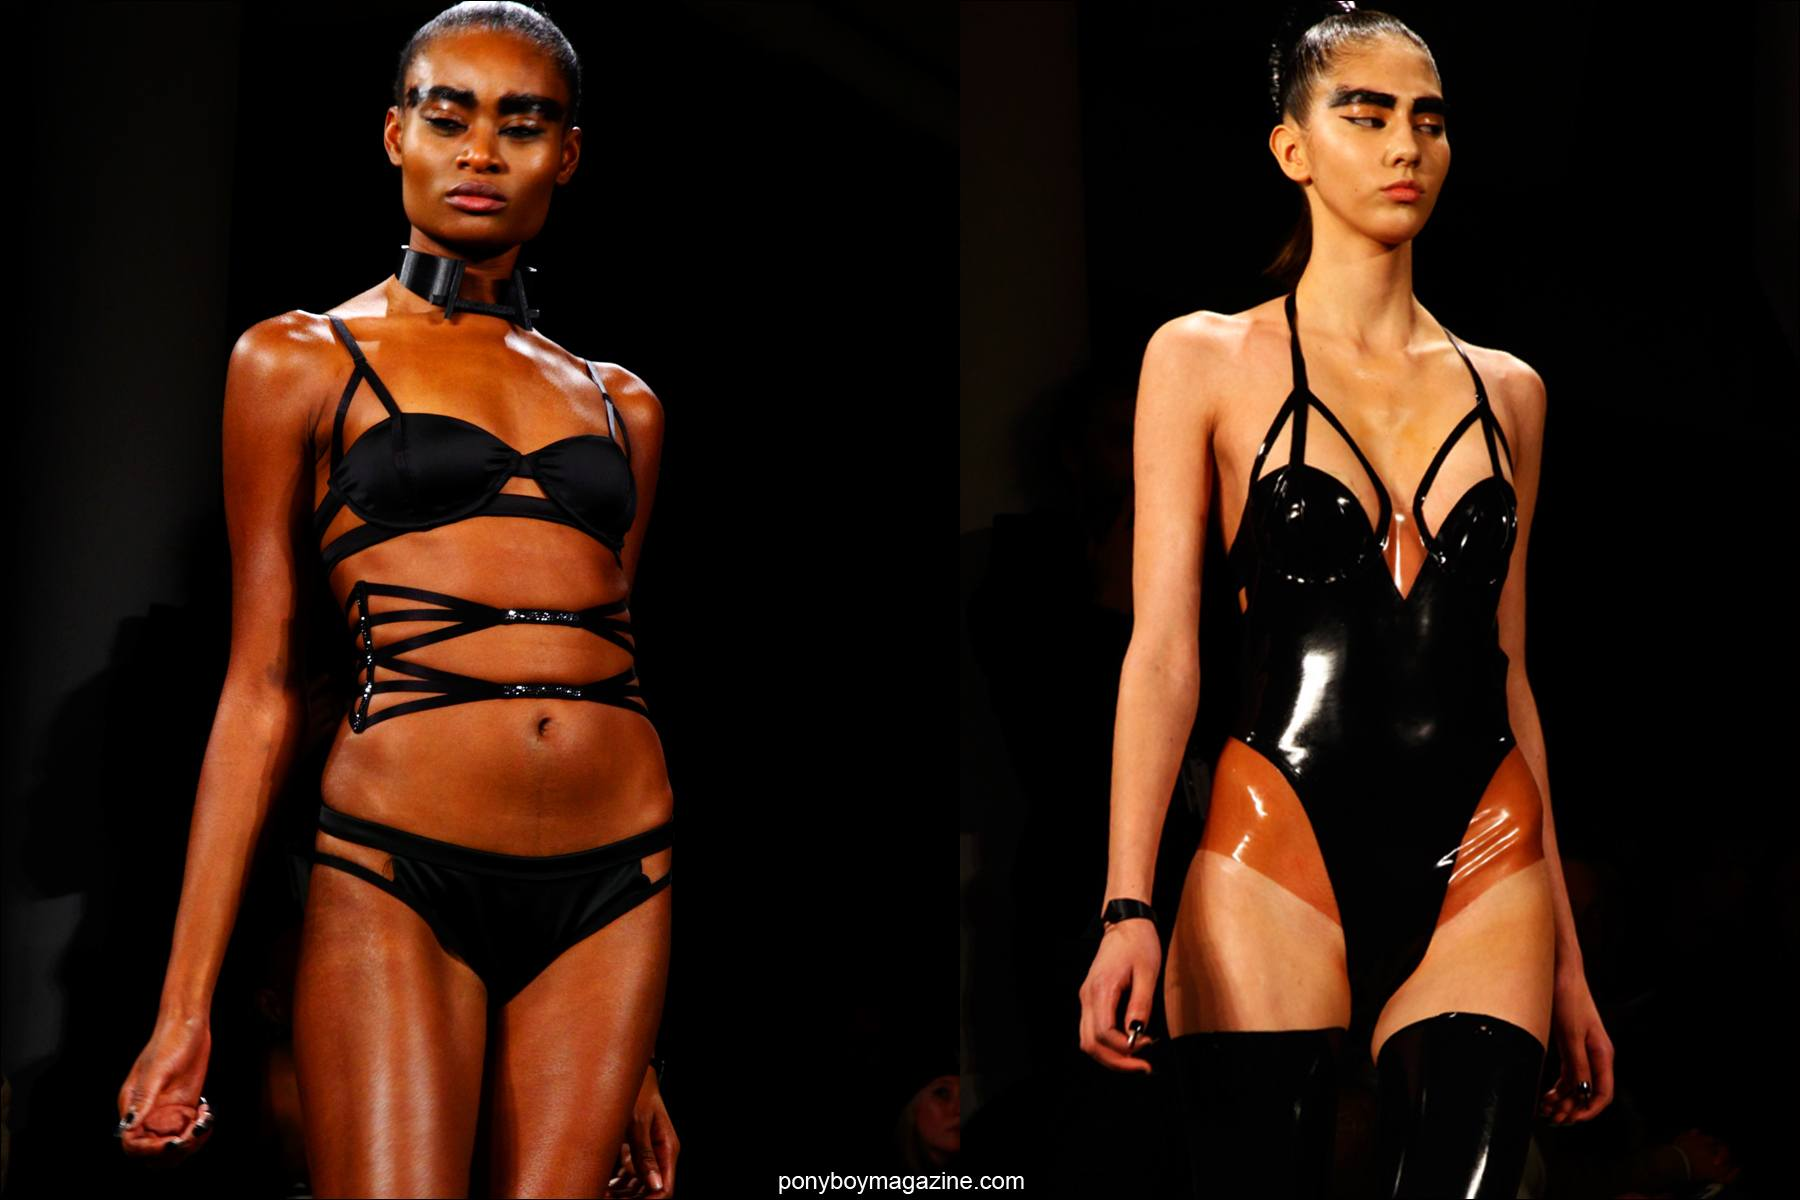 Structured designs at Chromat F/W15 collection. Photographed by Alexander Thompson for Ponyboy magazine in New York City.